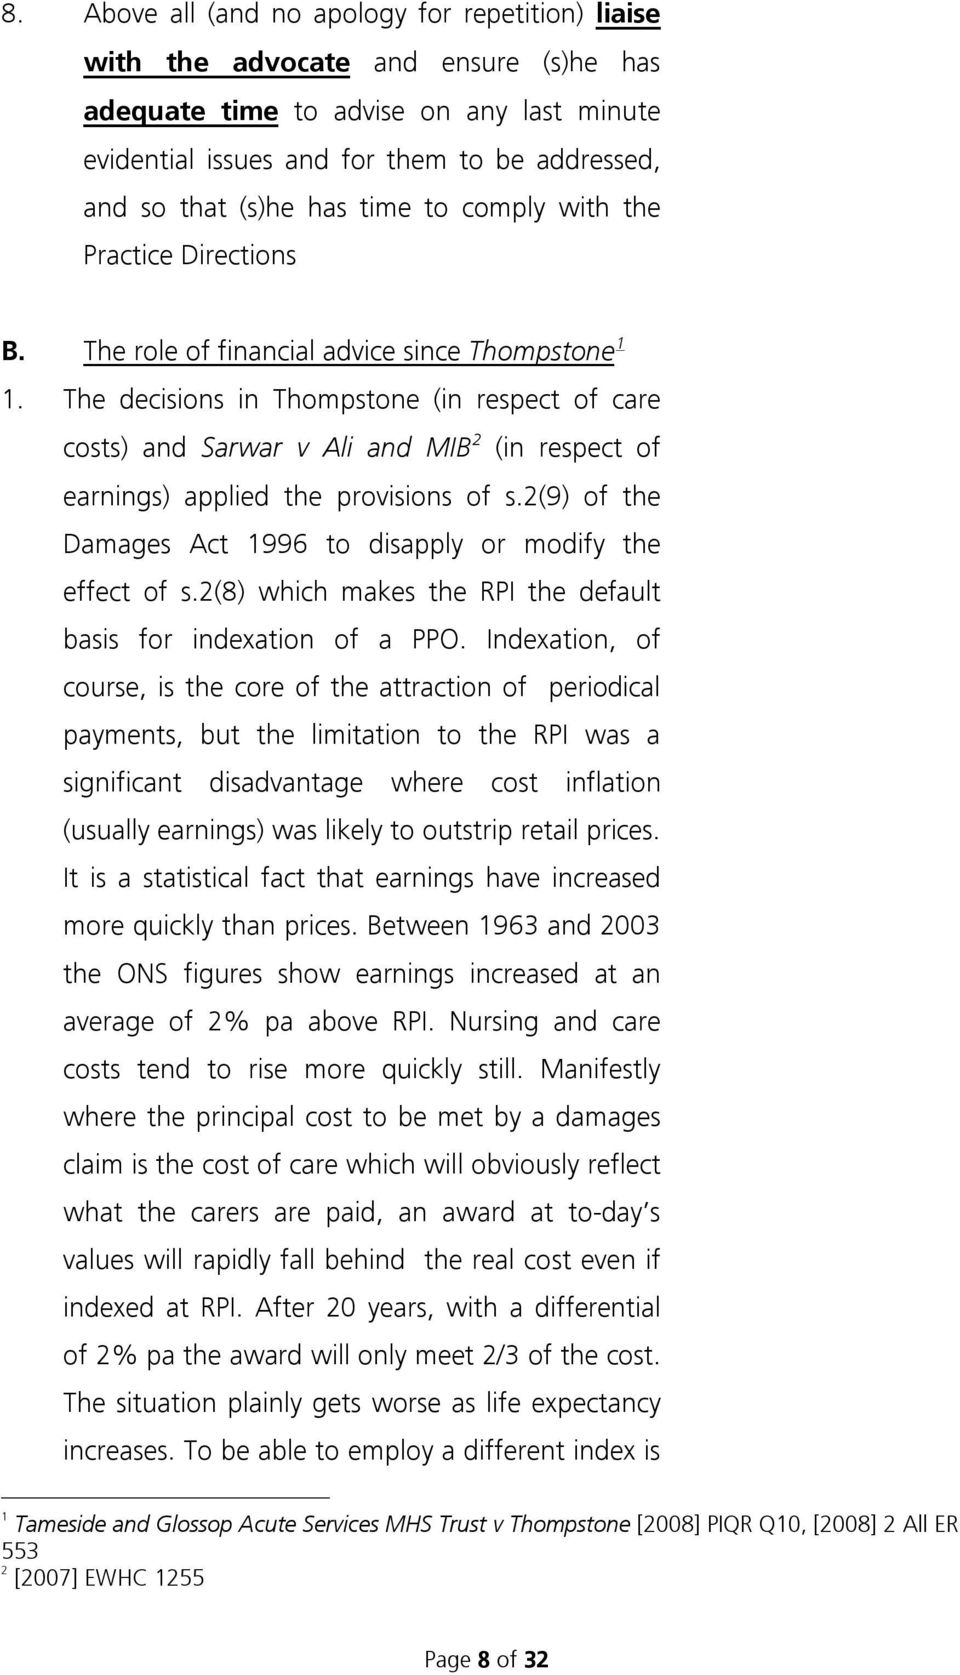 The decisions in Thompstone (in respect of care costs) and Sarwar v Ali and MIB 2 (in respect of earnings) applied the provisions of s.